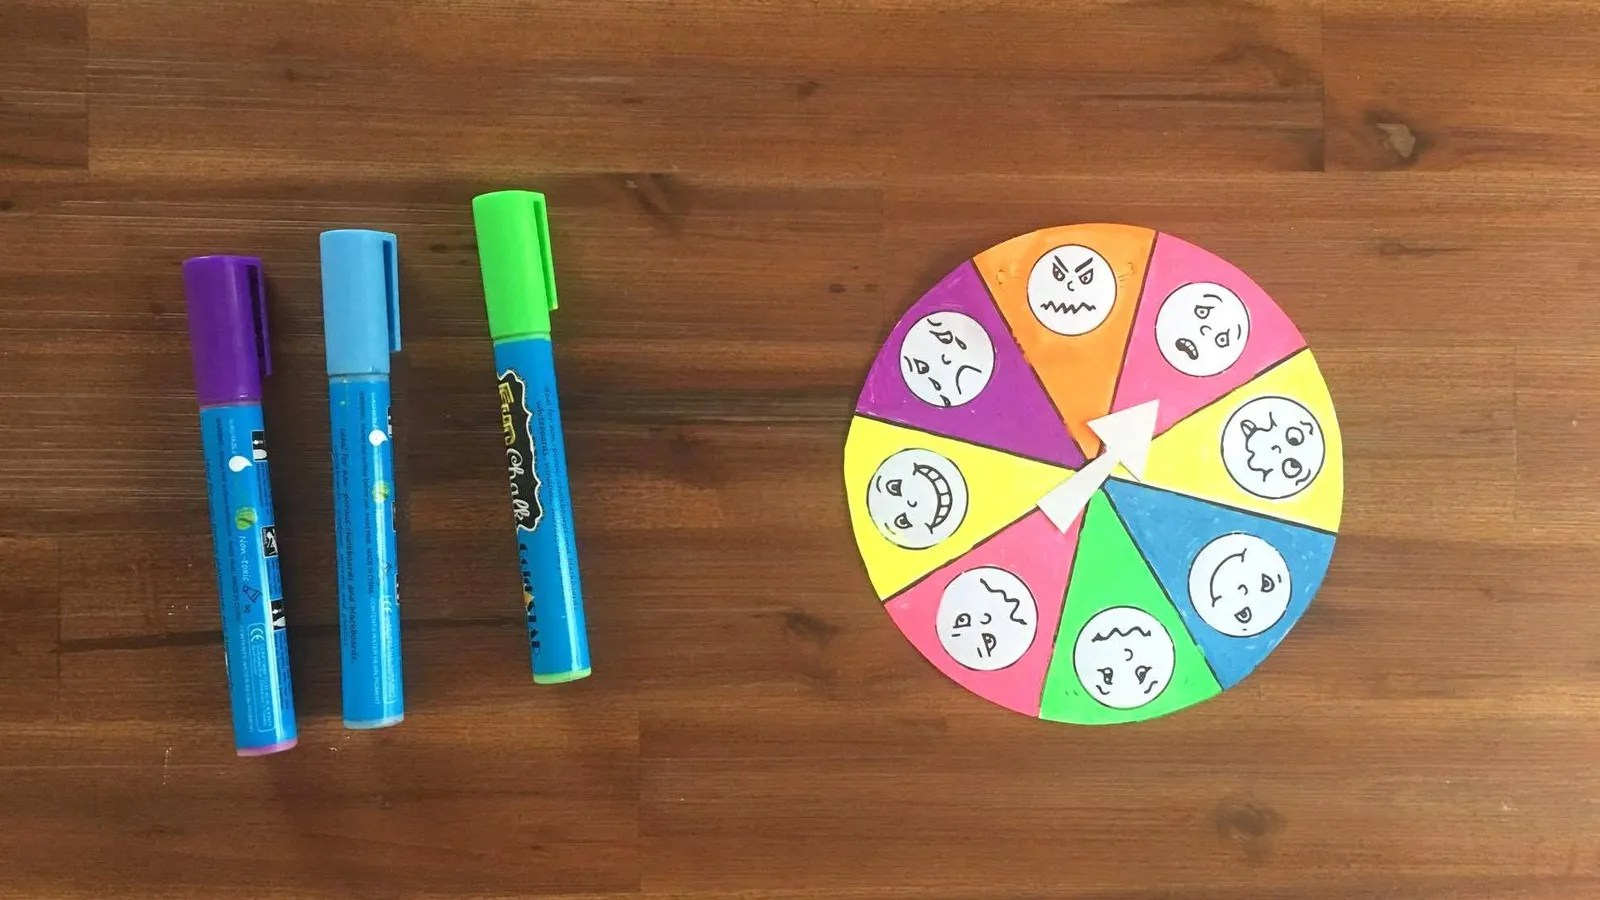 Make An Emotion Wheel To Help Kids Express Their Feelings